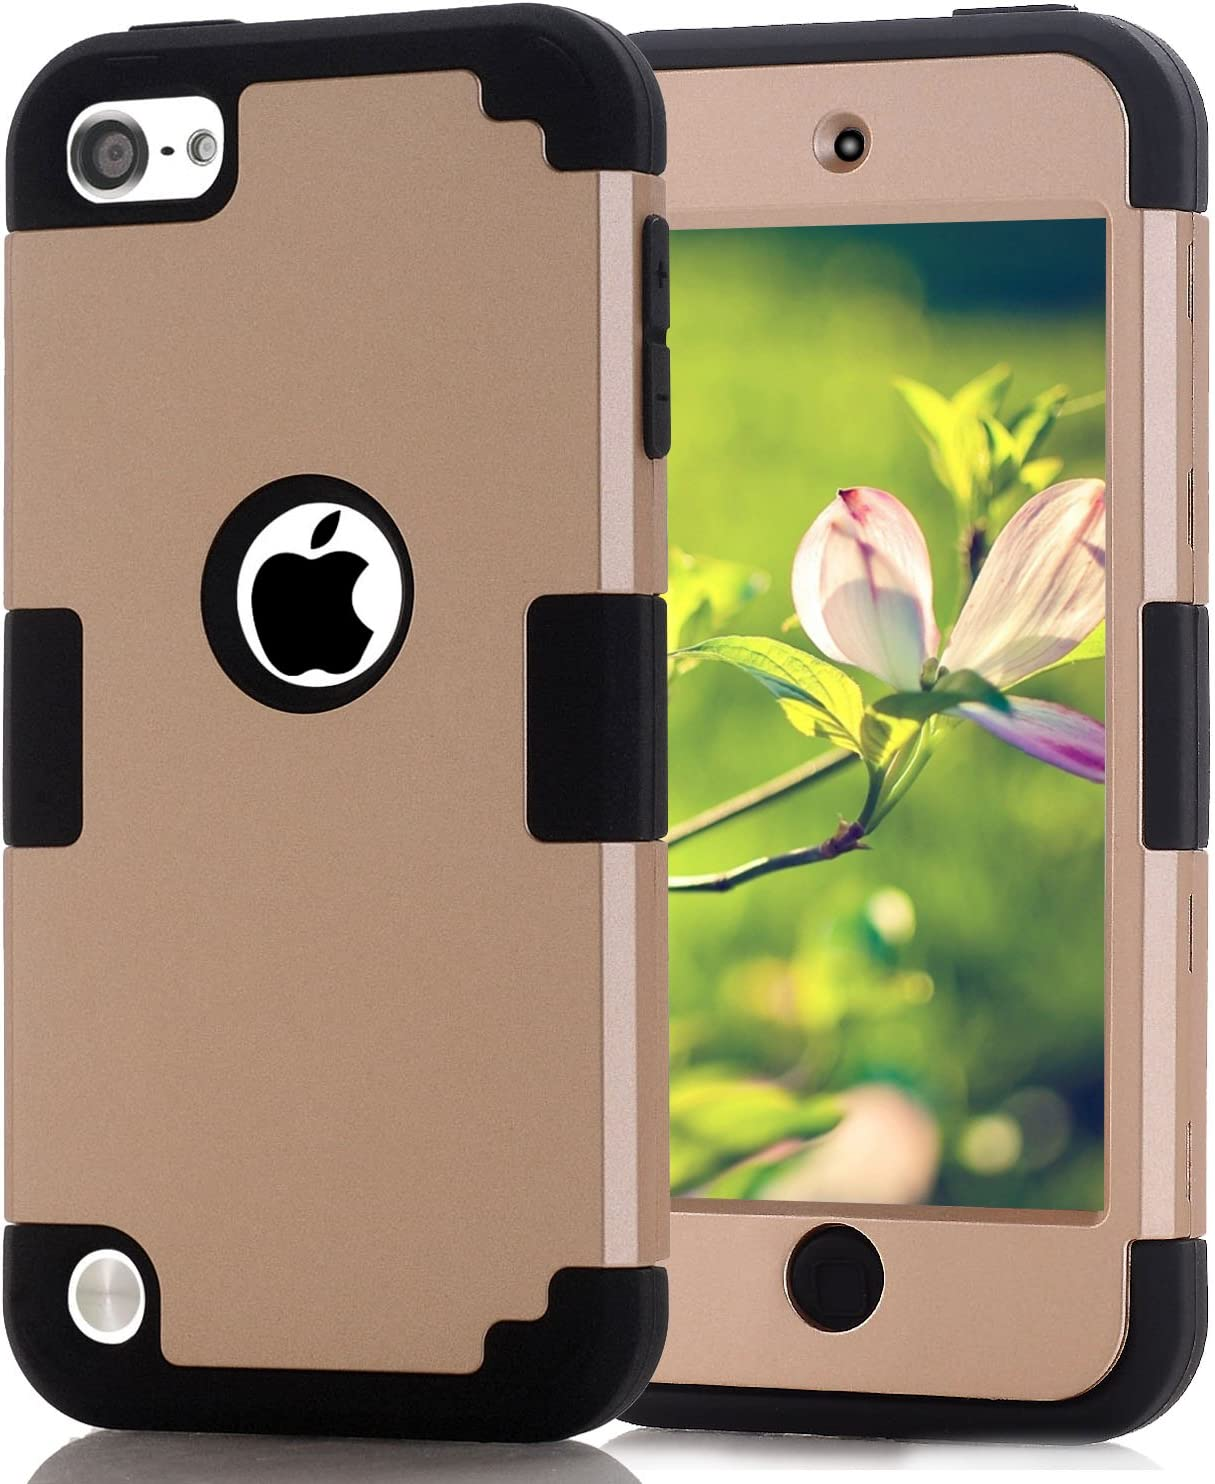 Case for iPod Touch 7th 6th Generation Case, CheerShare Dual Layer Shockproof Hard Case Cover for Apple iPod Touch 5 6th Generation Gold + Black